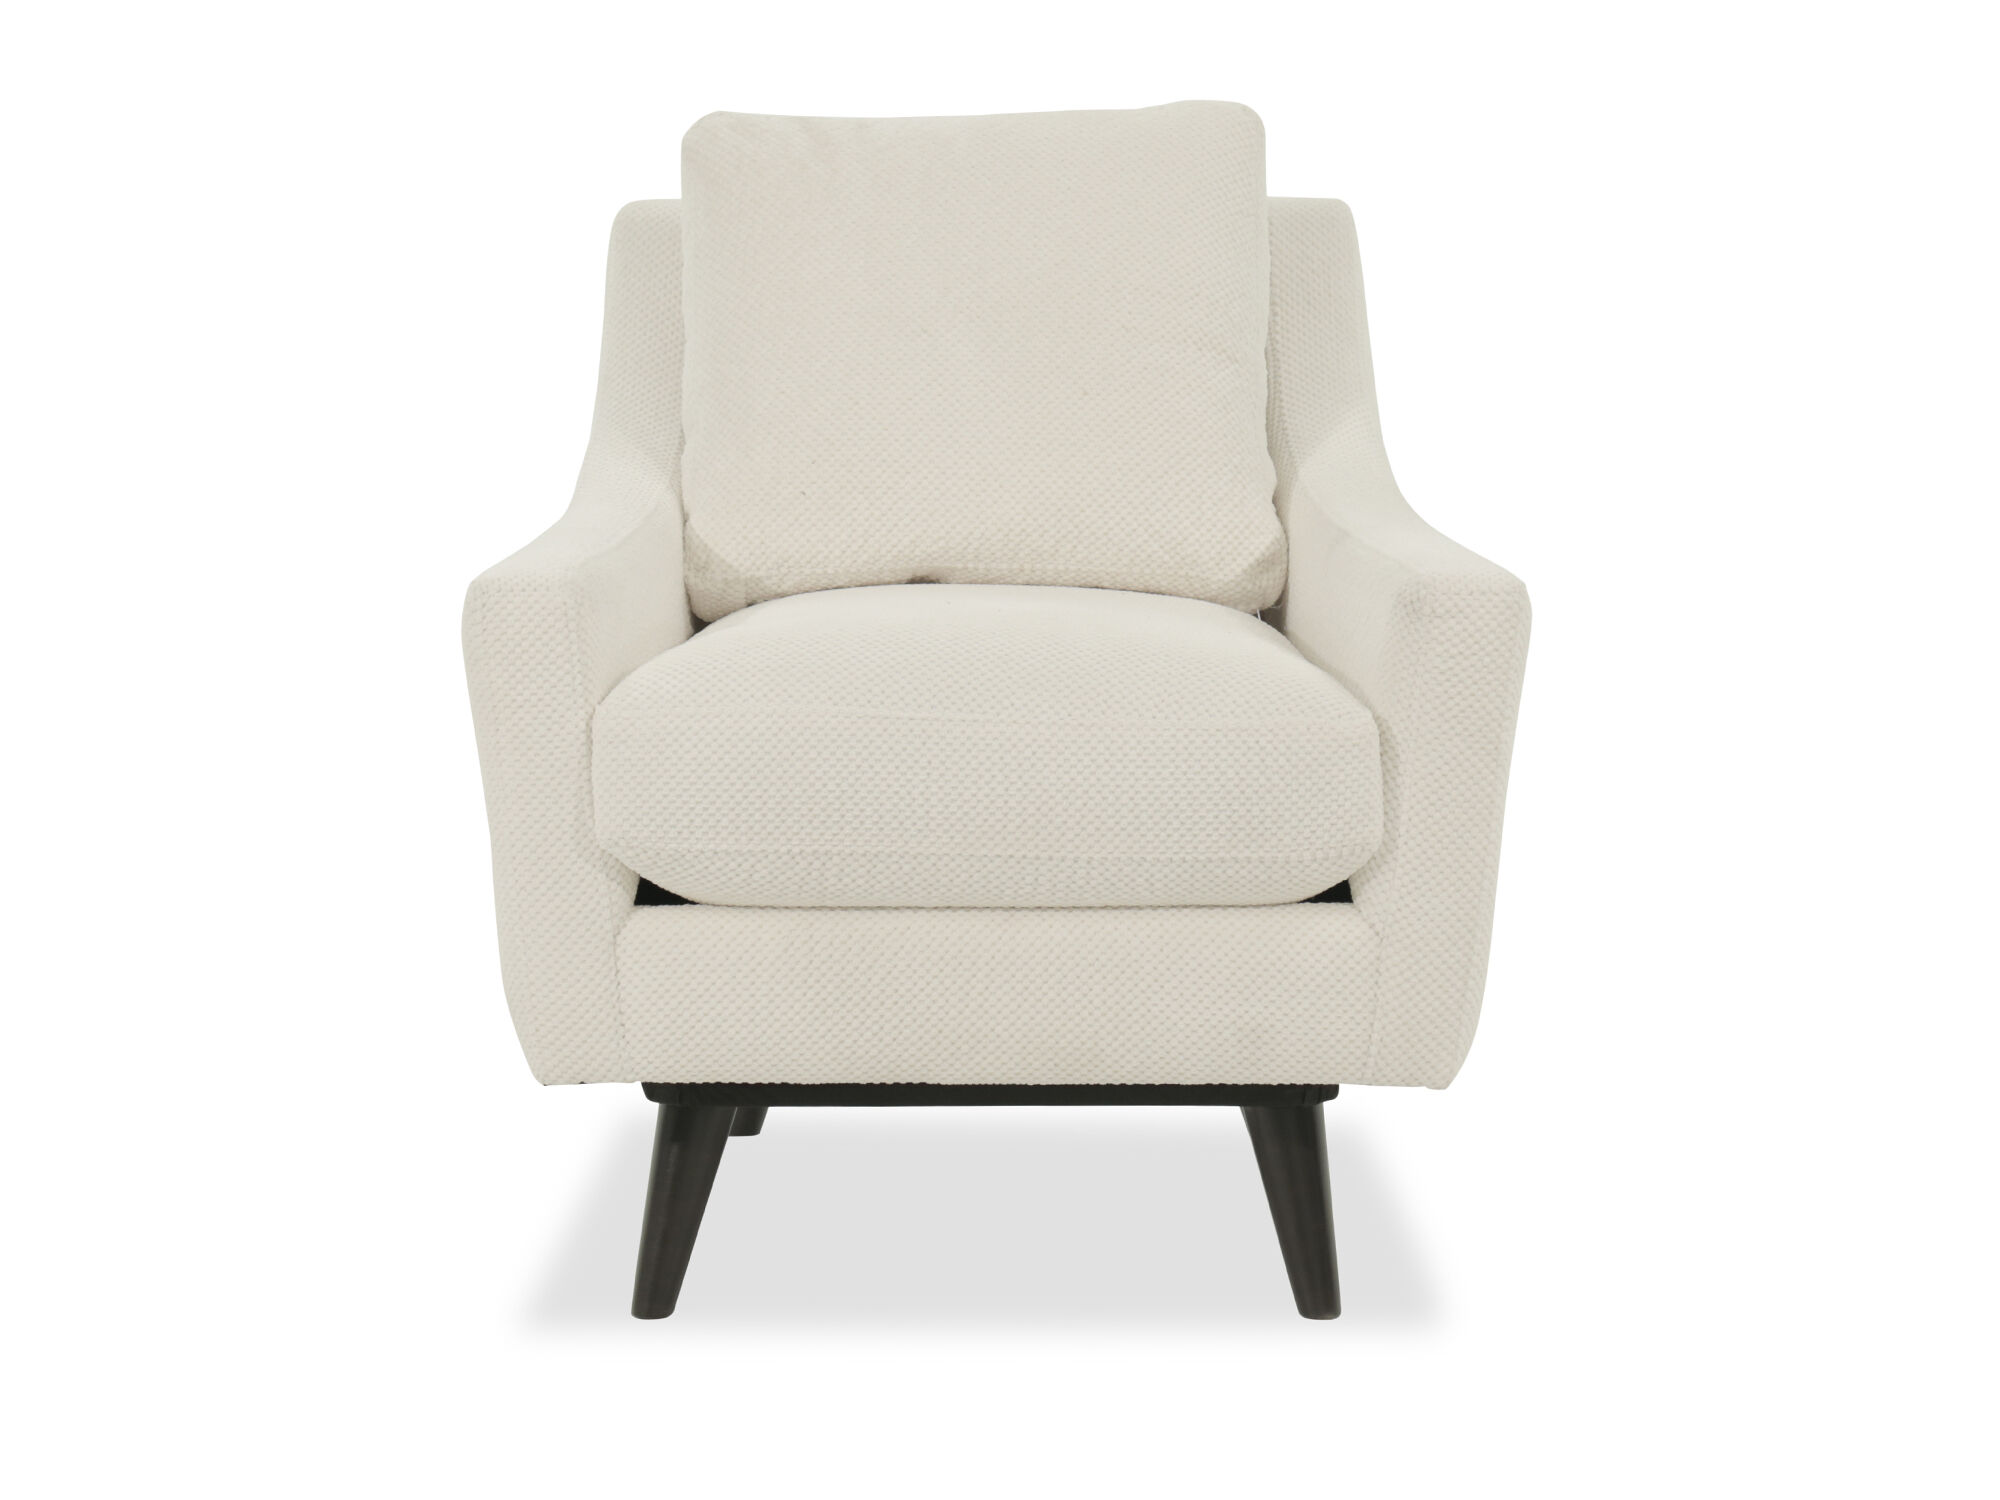 Images Mid Century Modern 31u0026quot; Swivel Chair In White Mid Century Modern  31u0026quot; Swivel Chair In White